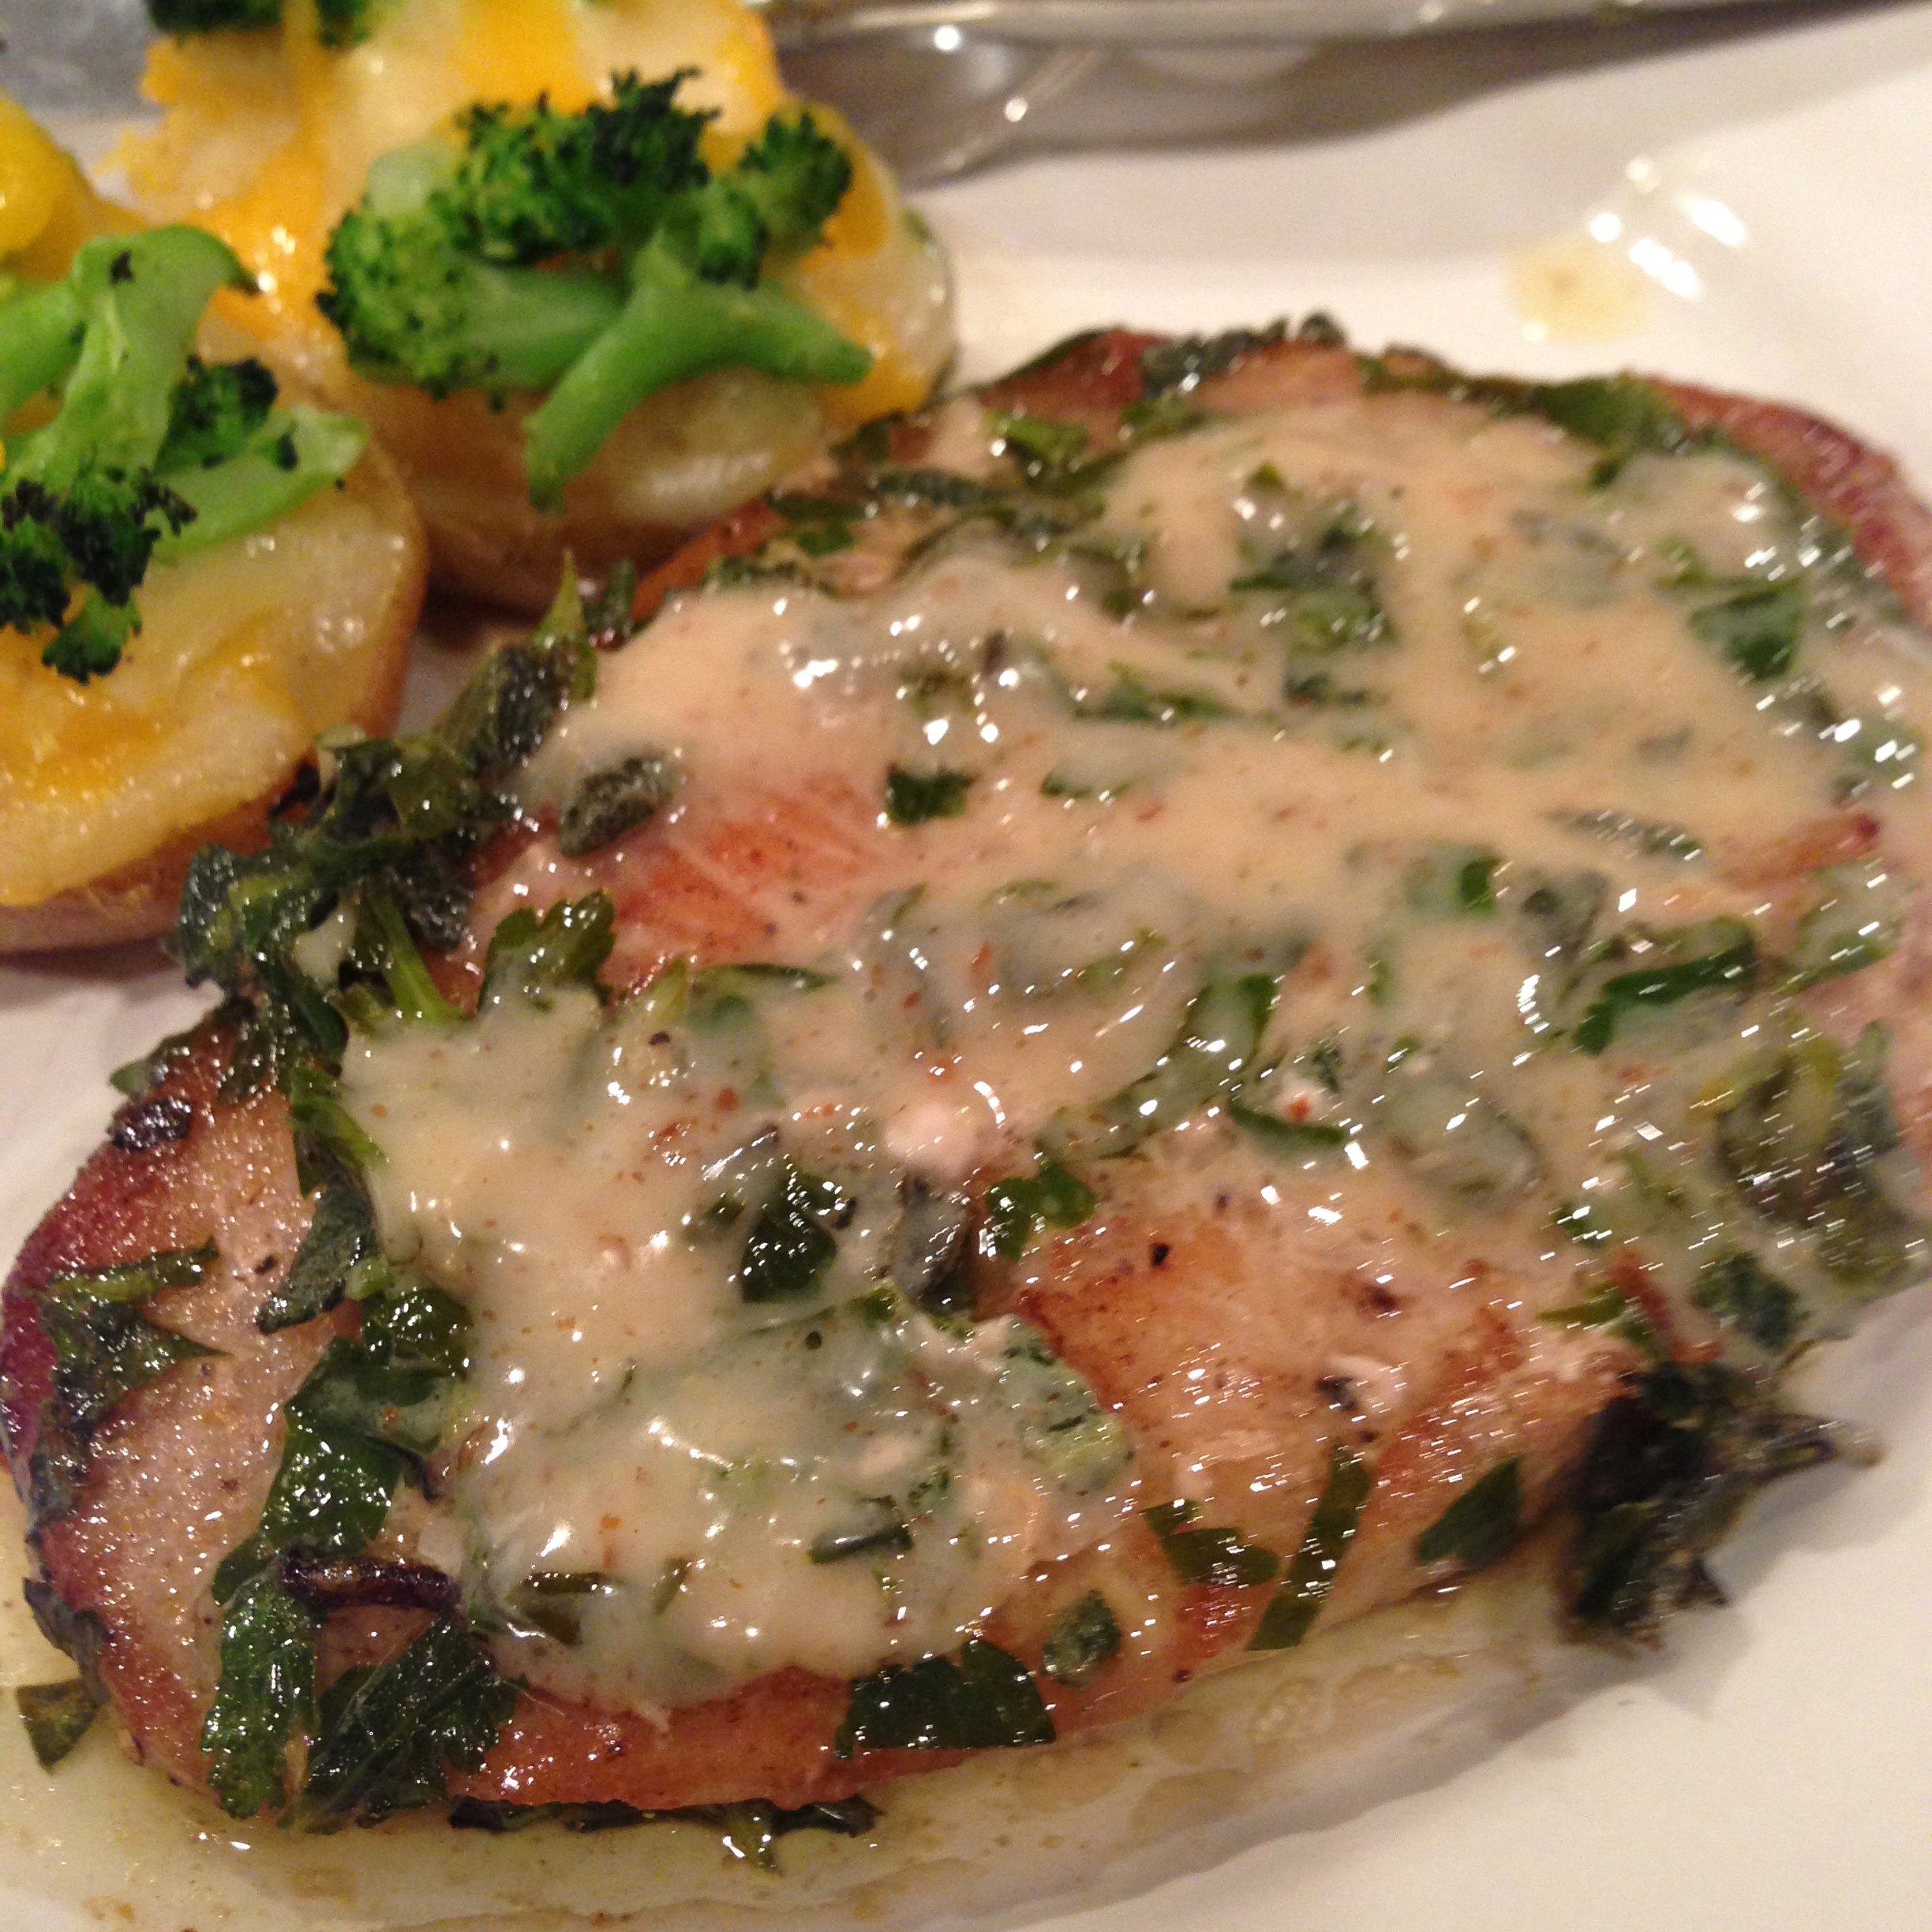 Pork with a Honey Mustard Herb Sauce